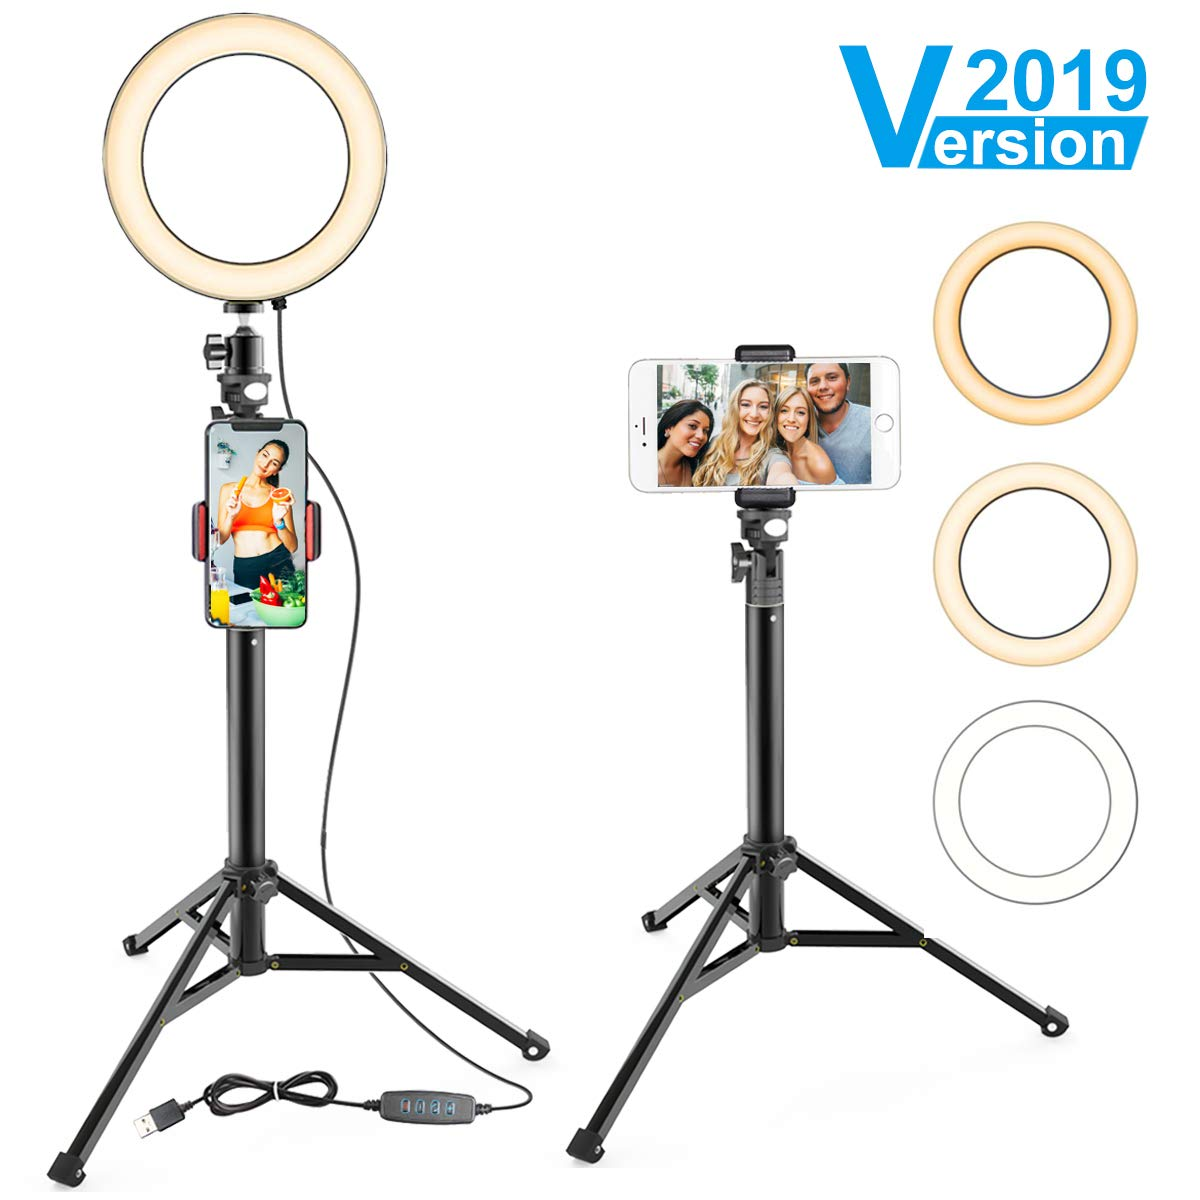 8'' Ring Light with Stand & Cell Phone Holder for YouTube Video and Makeup, Selfie Light Ring for Live Stream/Photography, Compatible with iPhone Android,Remote Control